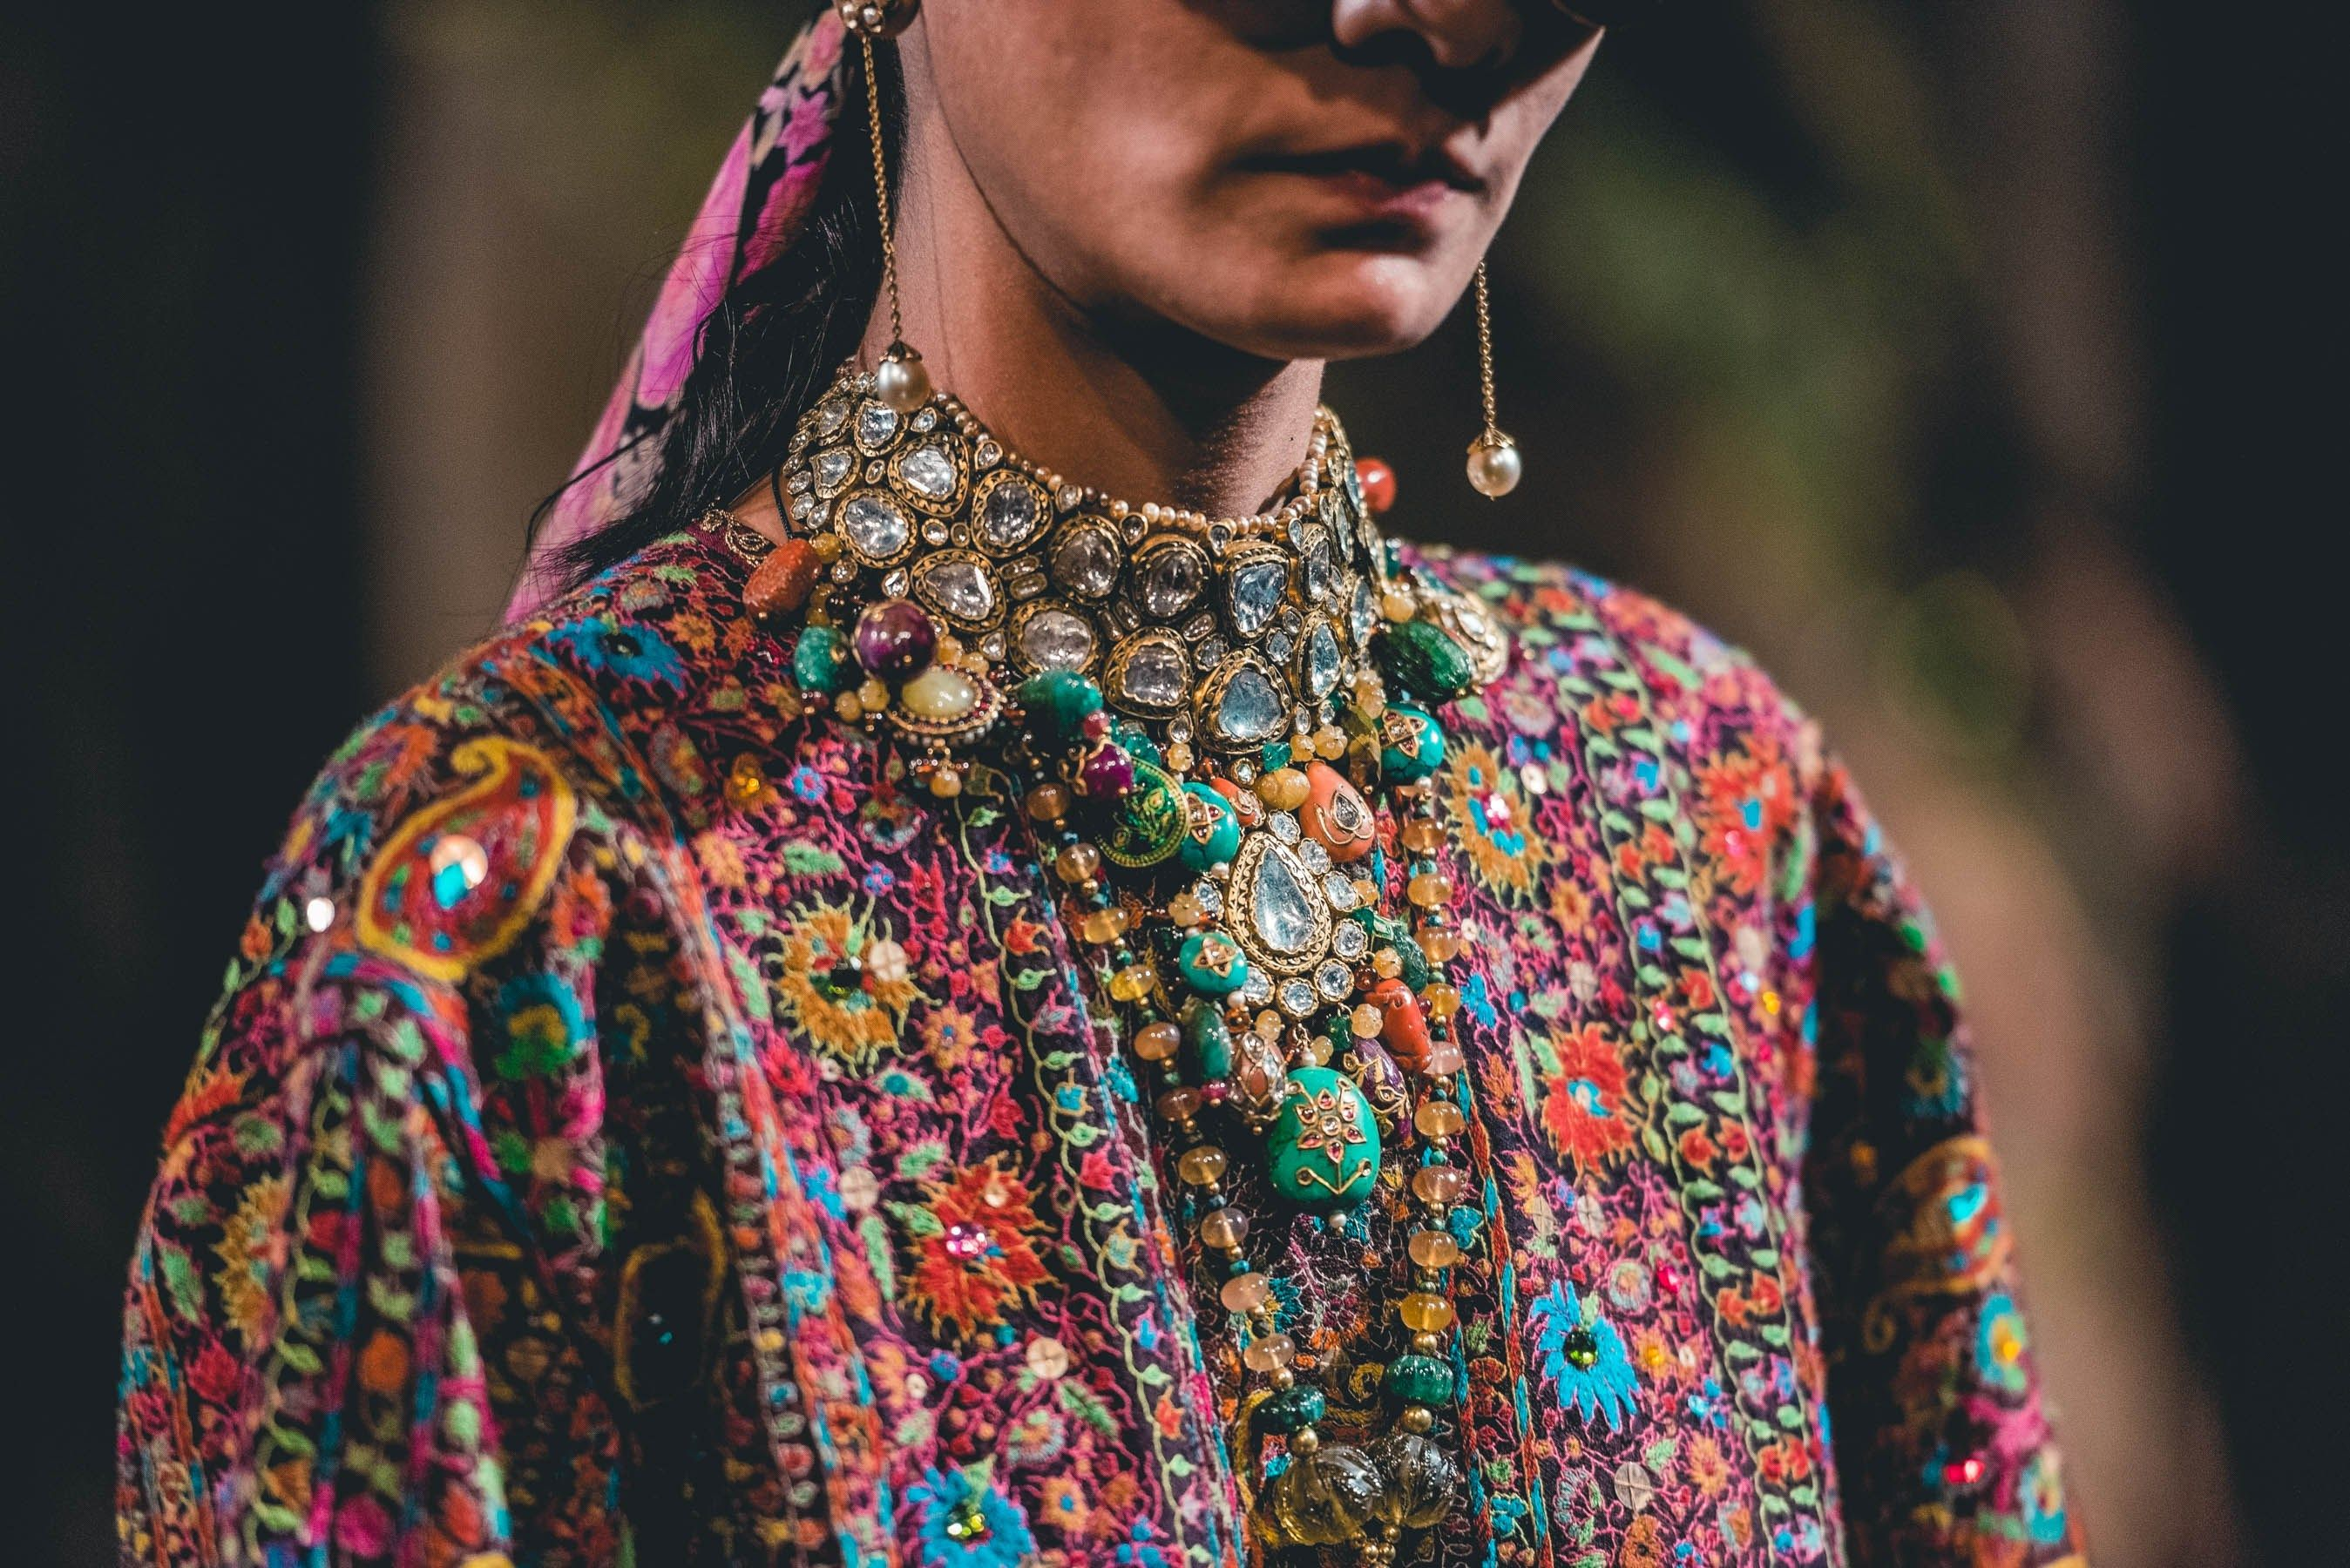 20 Years Of Sabyasachi Photography Assignment 20yearsofsabyasachi Sabyasachi Indian Fashion Designers Sabyasachi Collection